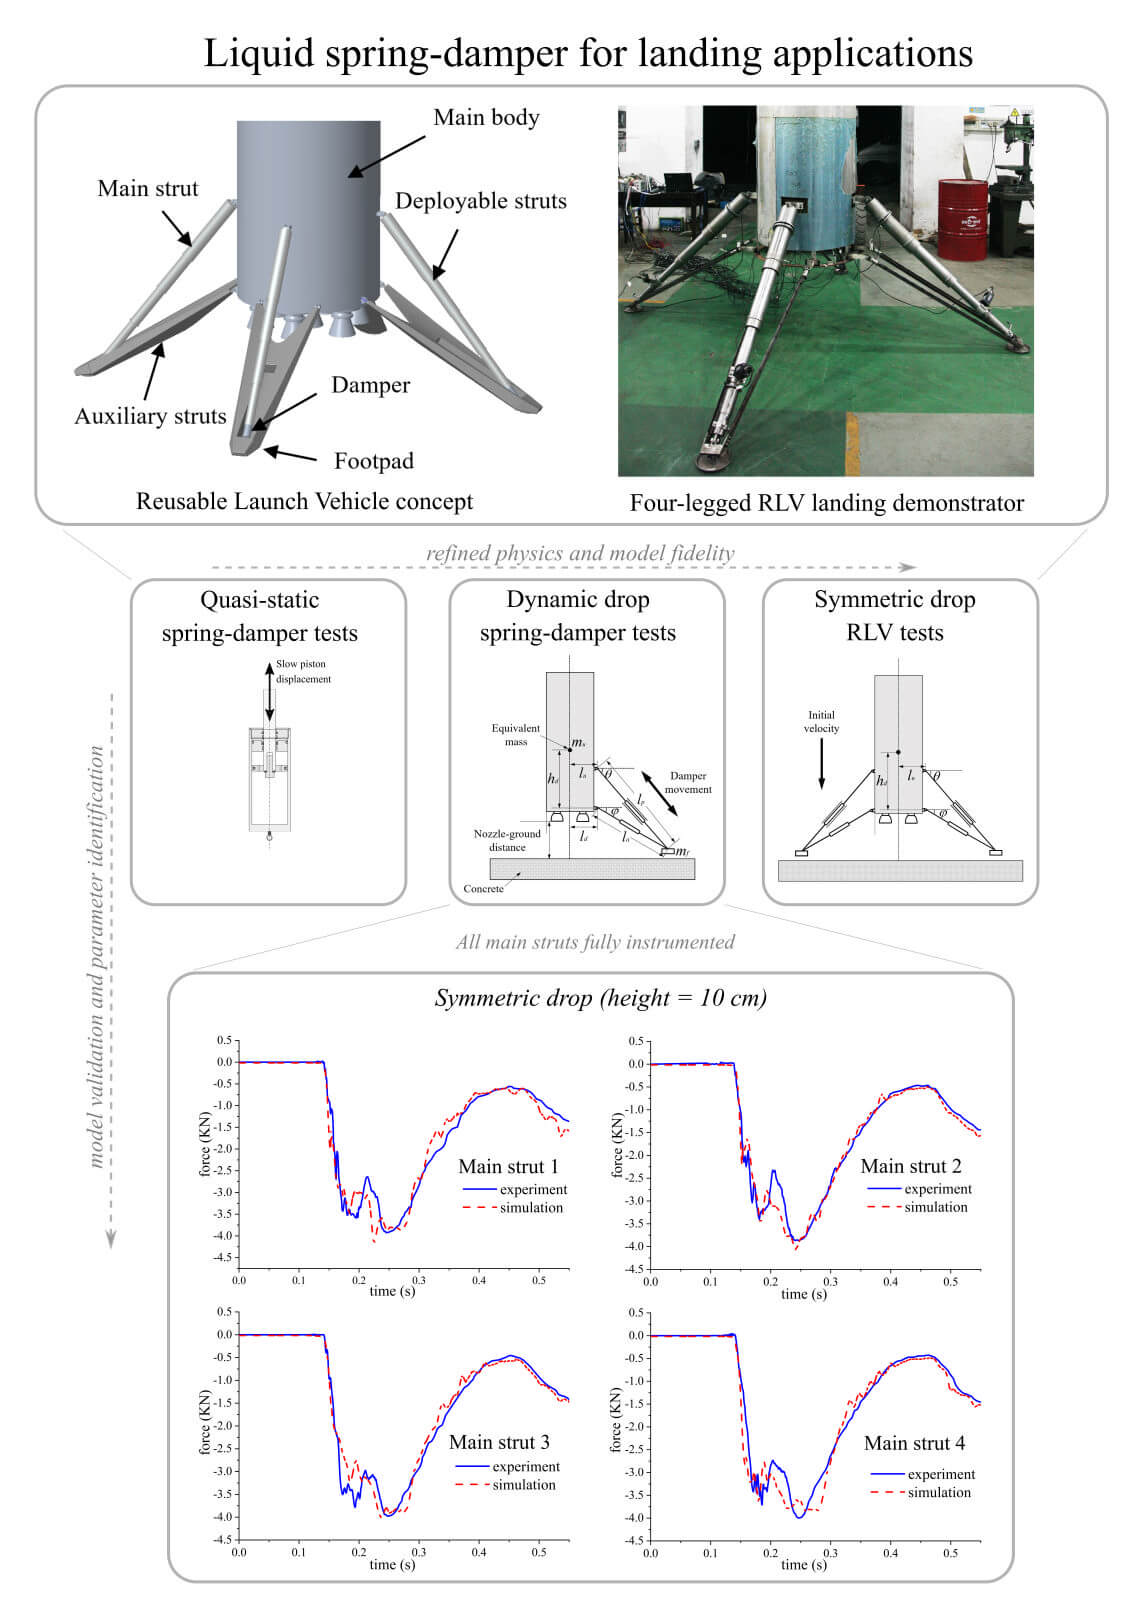 Liquid spring damper for vertical landing Reusable Launch Vehicle under impact conditions - Advances in Engineering